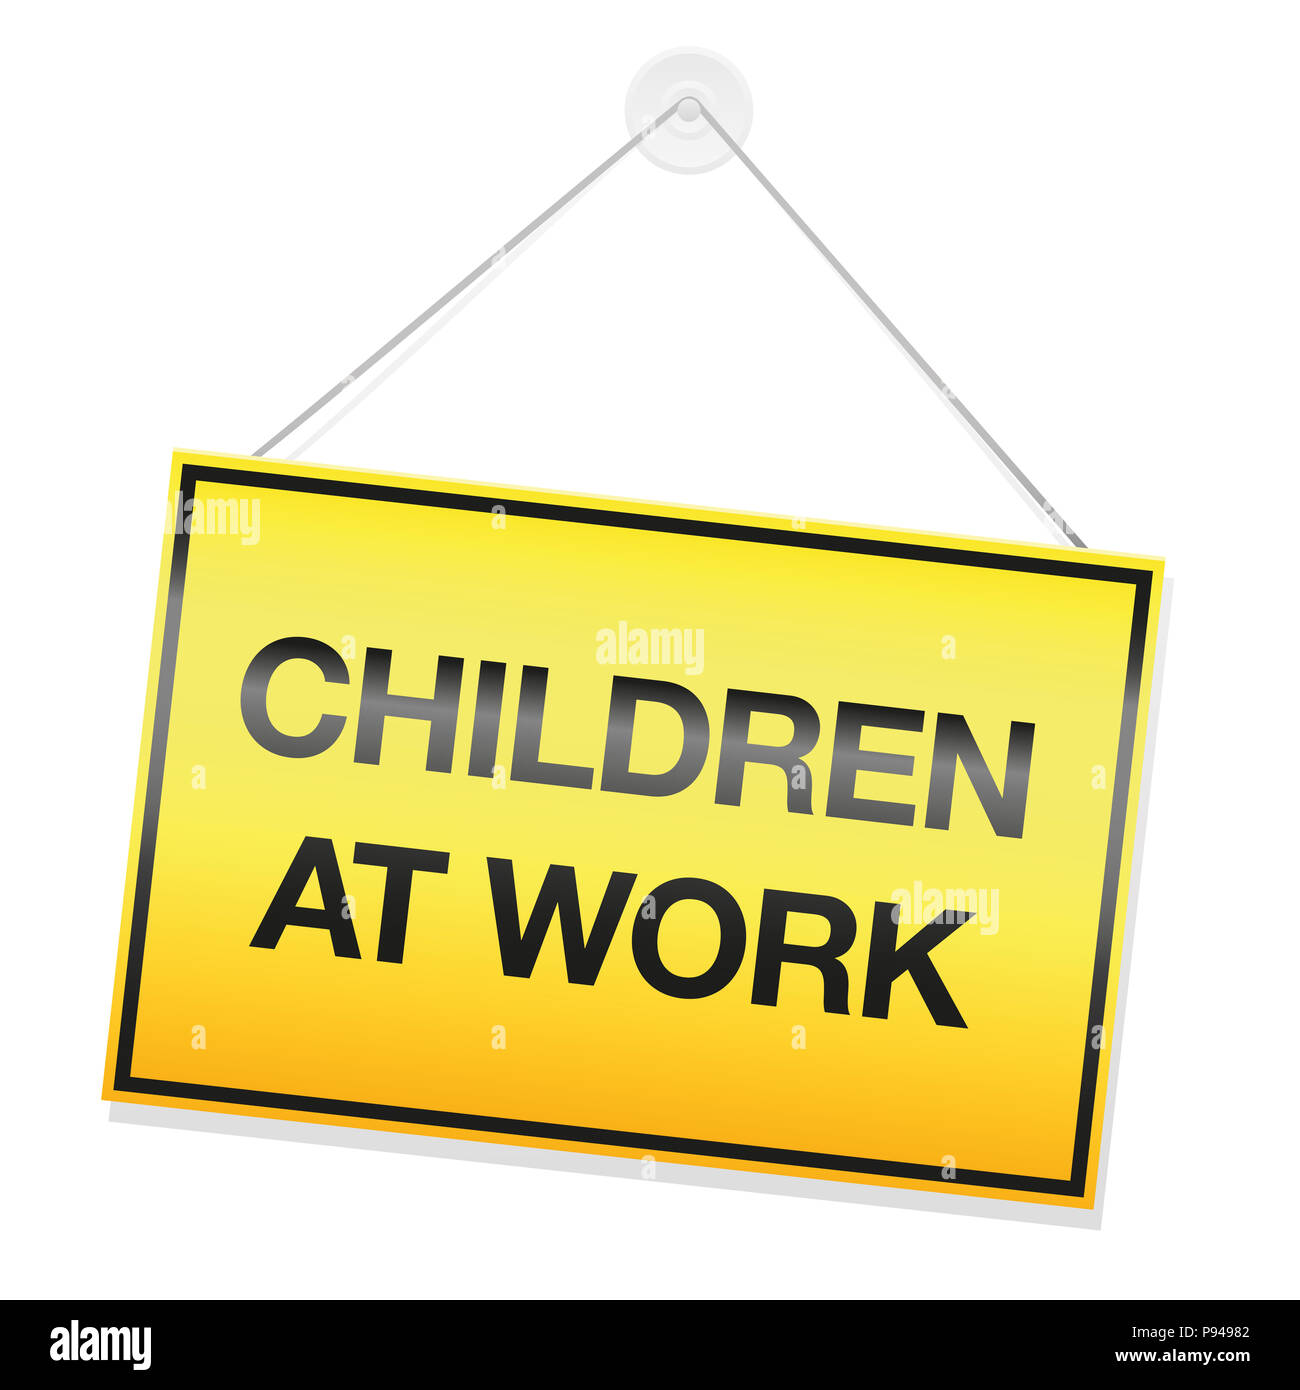 CHILDREN AT WORK signboard. Symbol for children doing their homework or cleaning up their kids room or for involuntary illegal child labor. - Stock Image